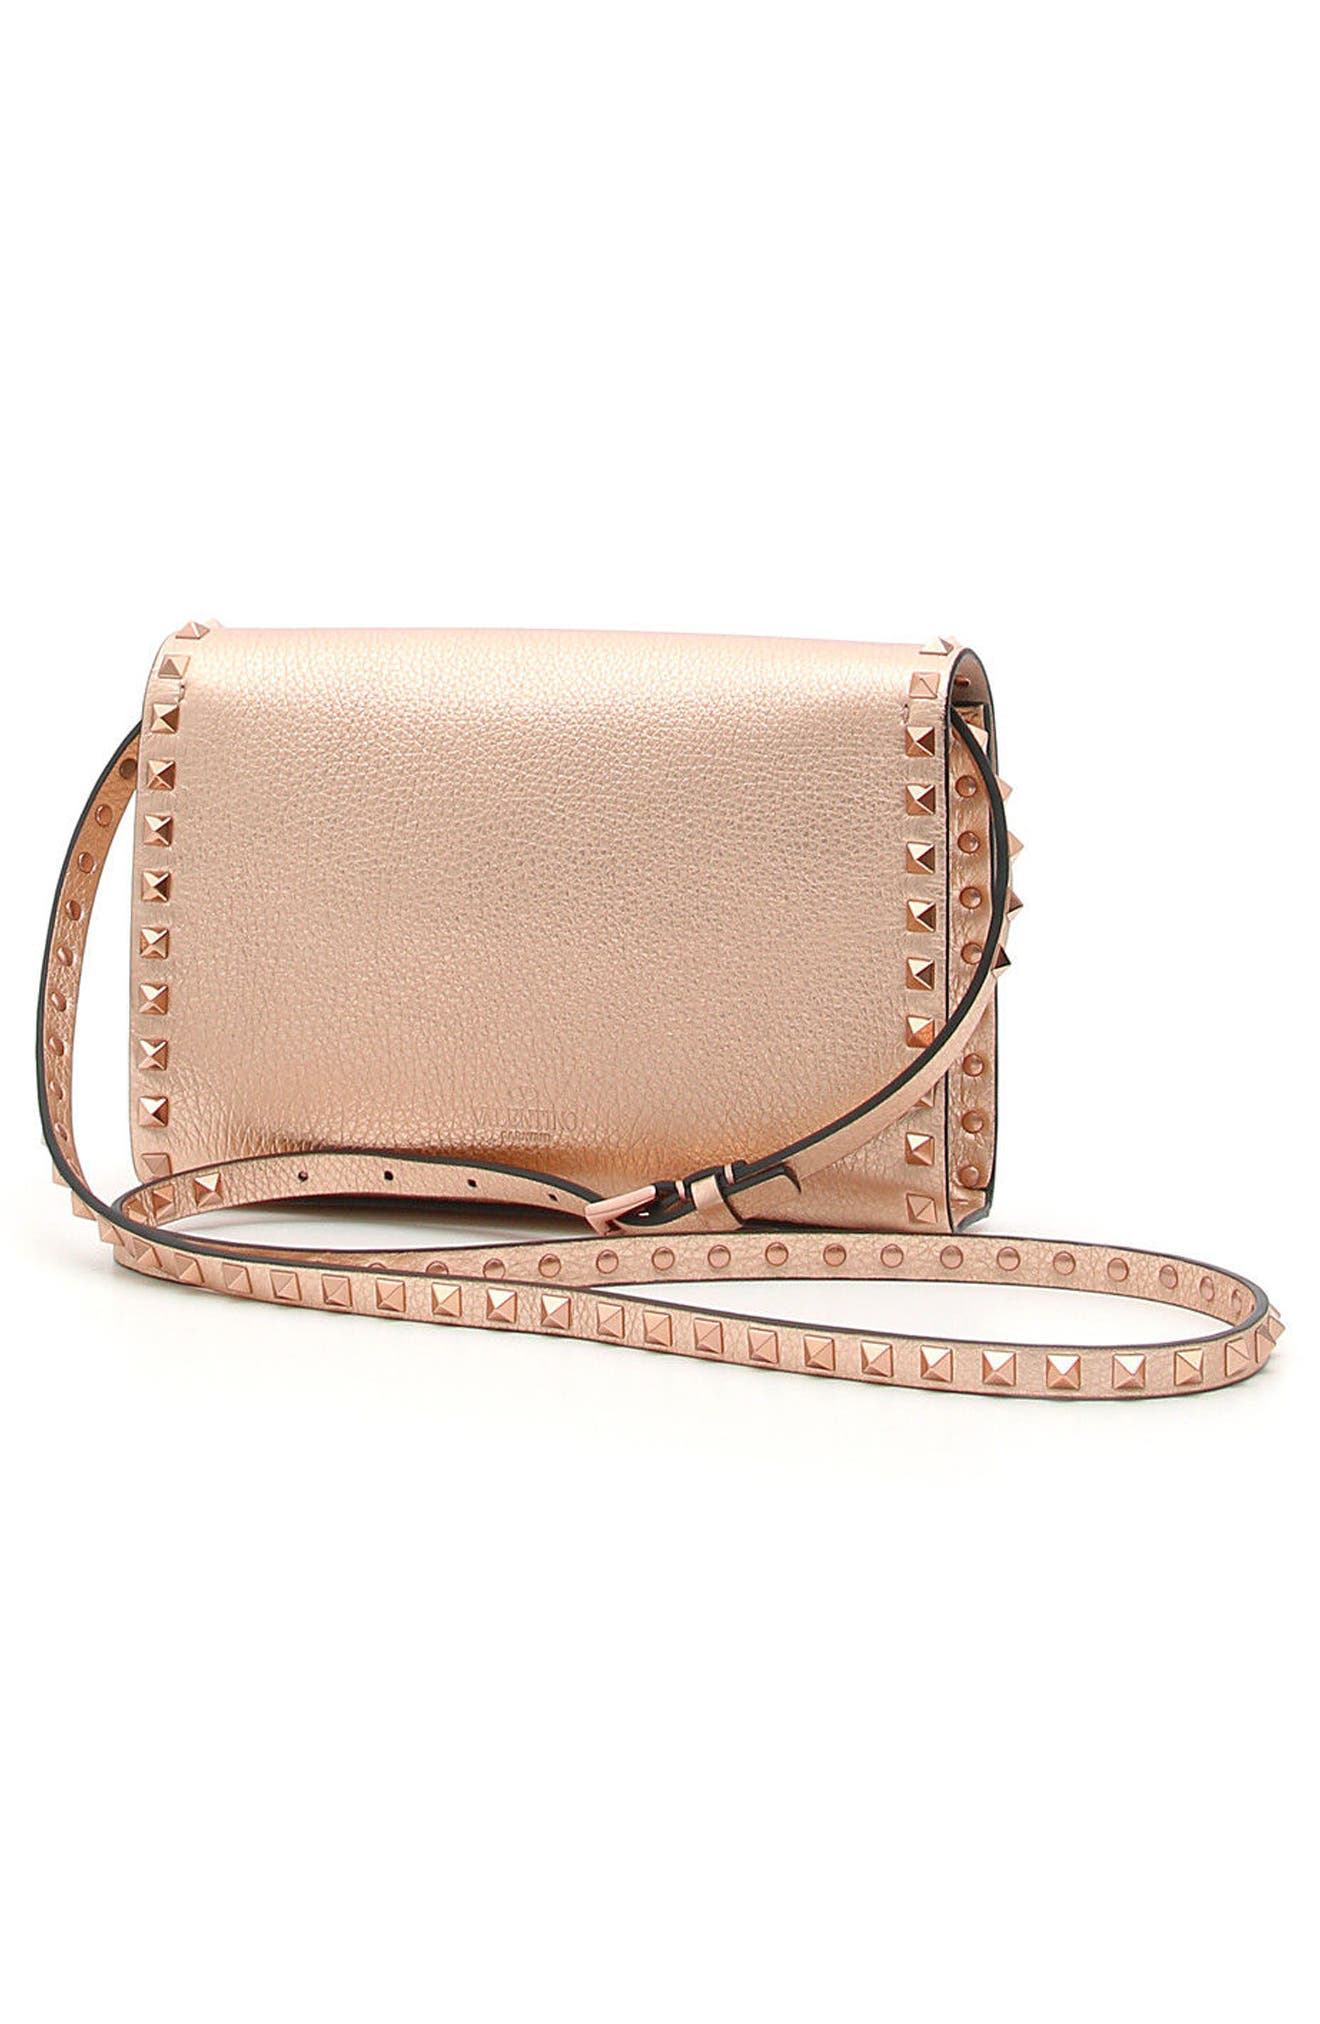 Rockstud Medium Metallic Leather Shoulder Bag,                             Alternate thumbnail 2, color,                             Rosegold